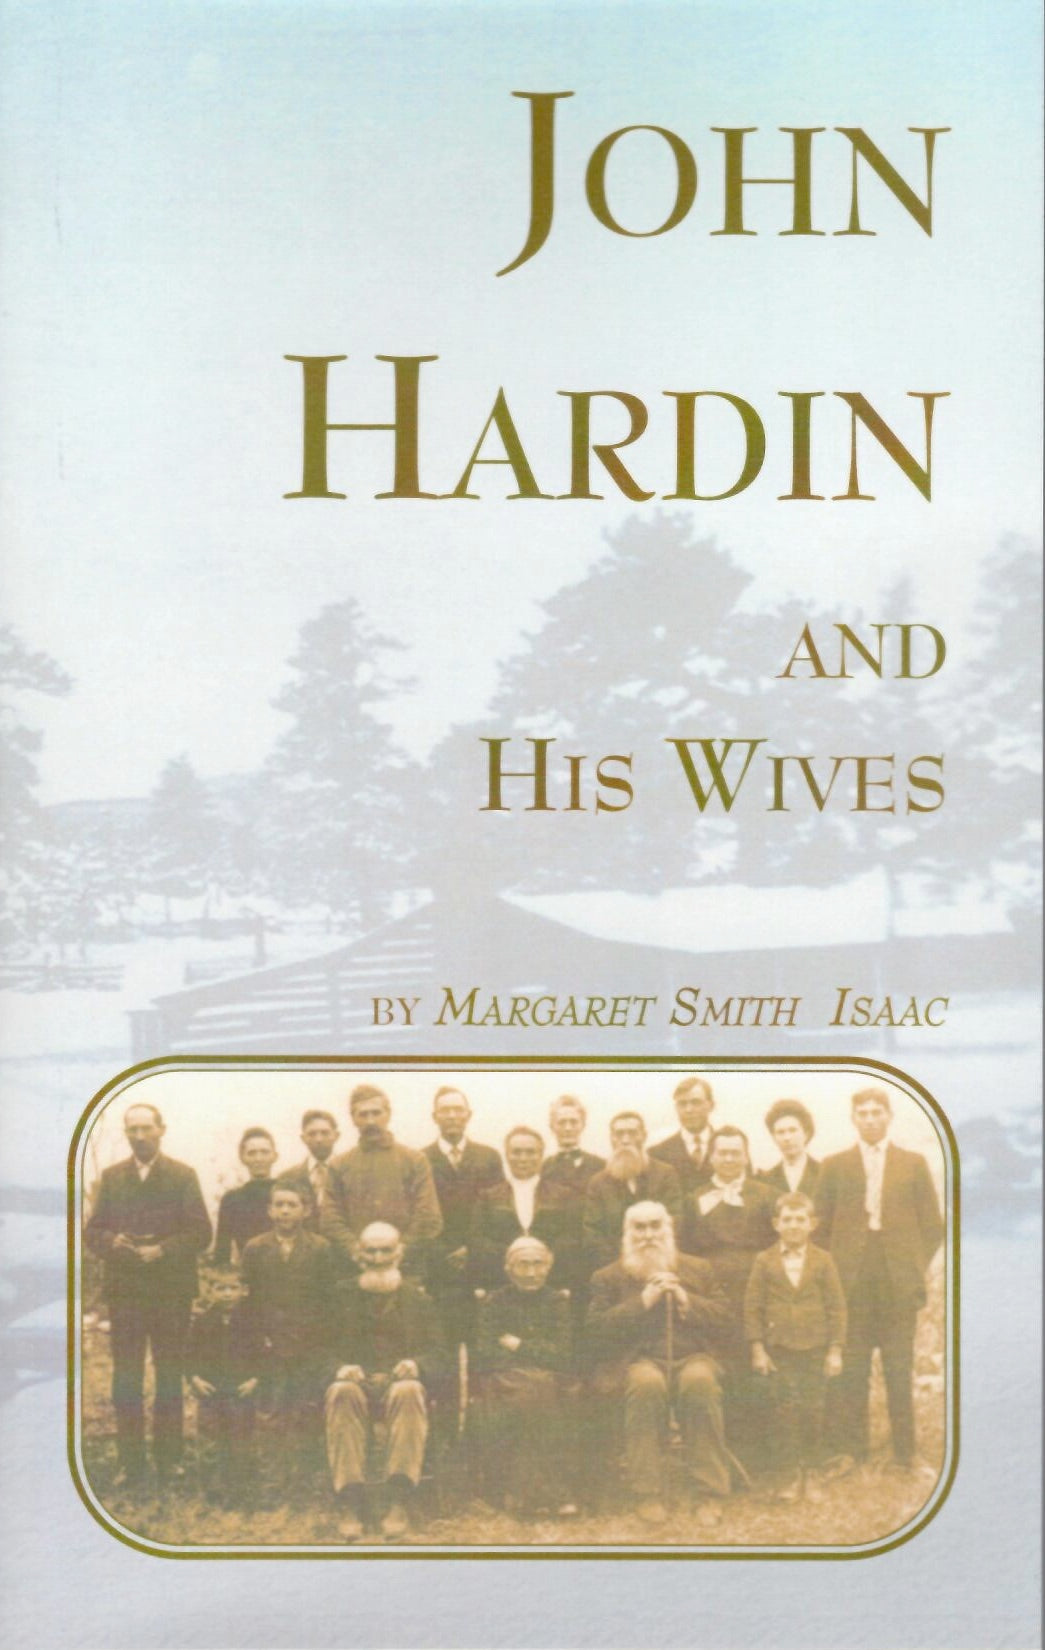 John Hardin and His Wives